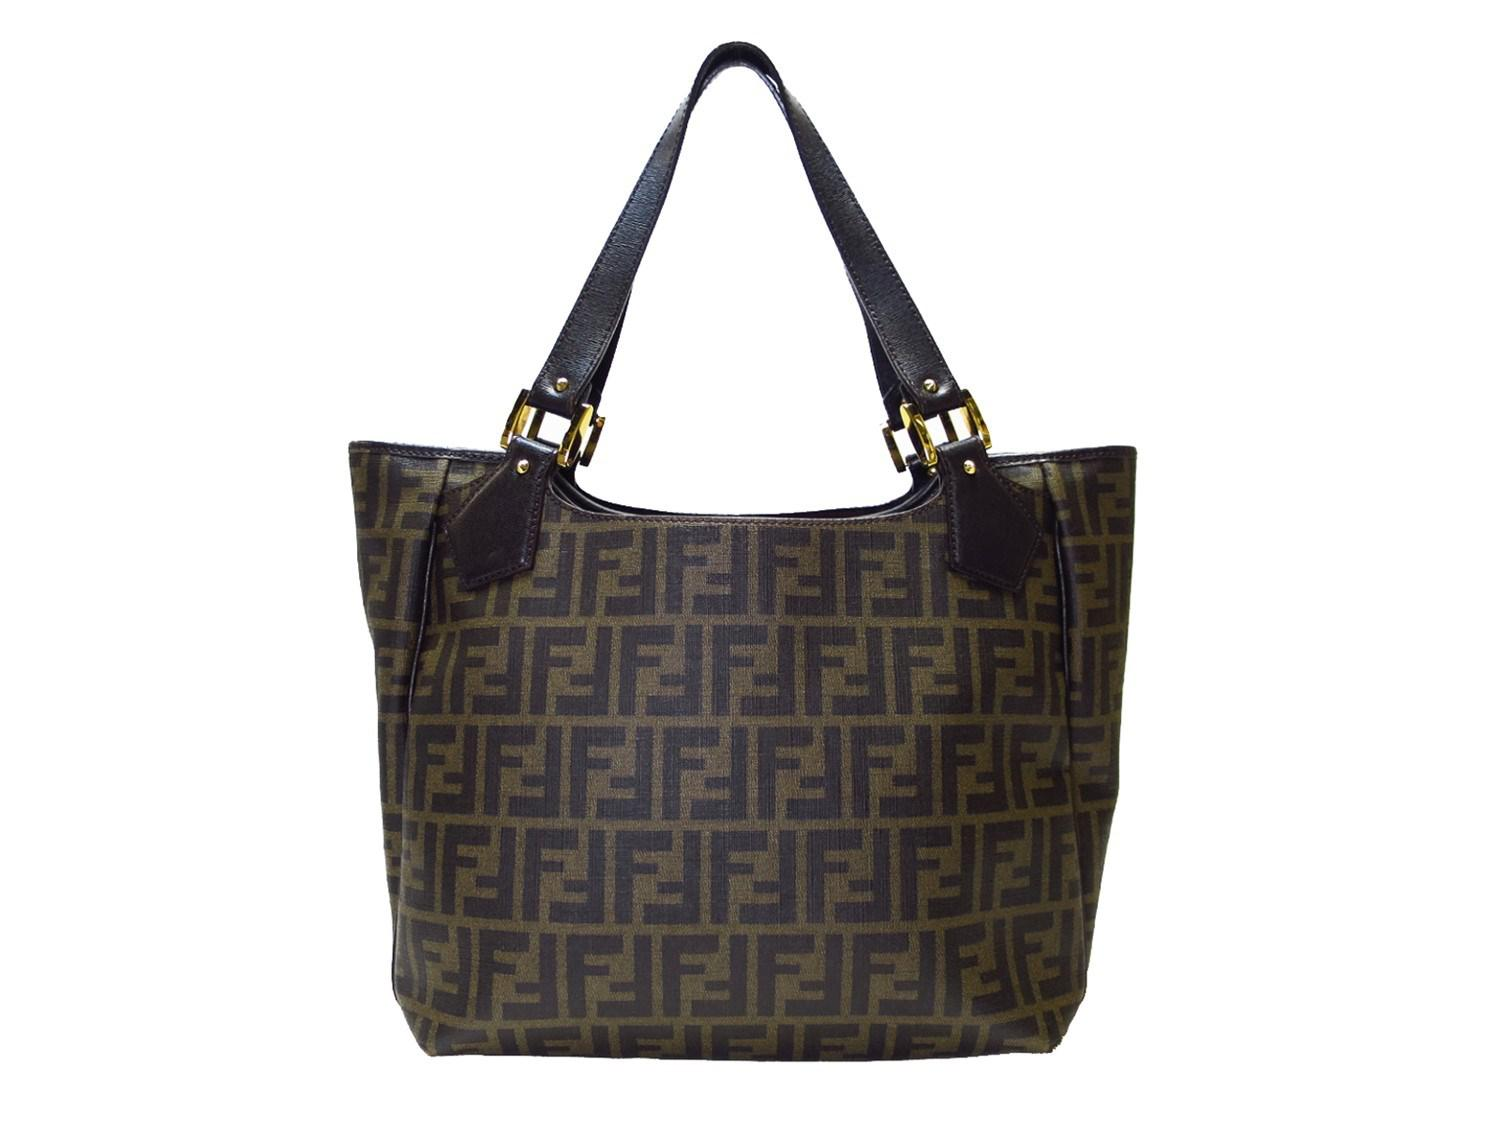 Lyst - Fendi Auth Zucca Shoulder Tote Bag Brown Coated Canvas Used ... 9f39106646b3d